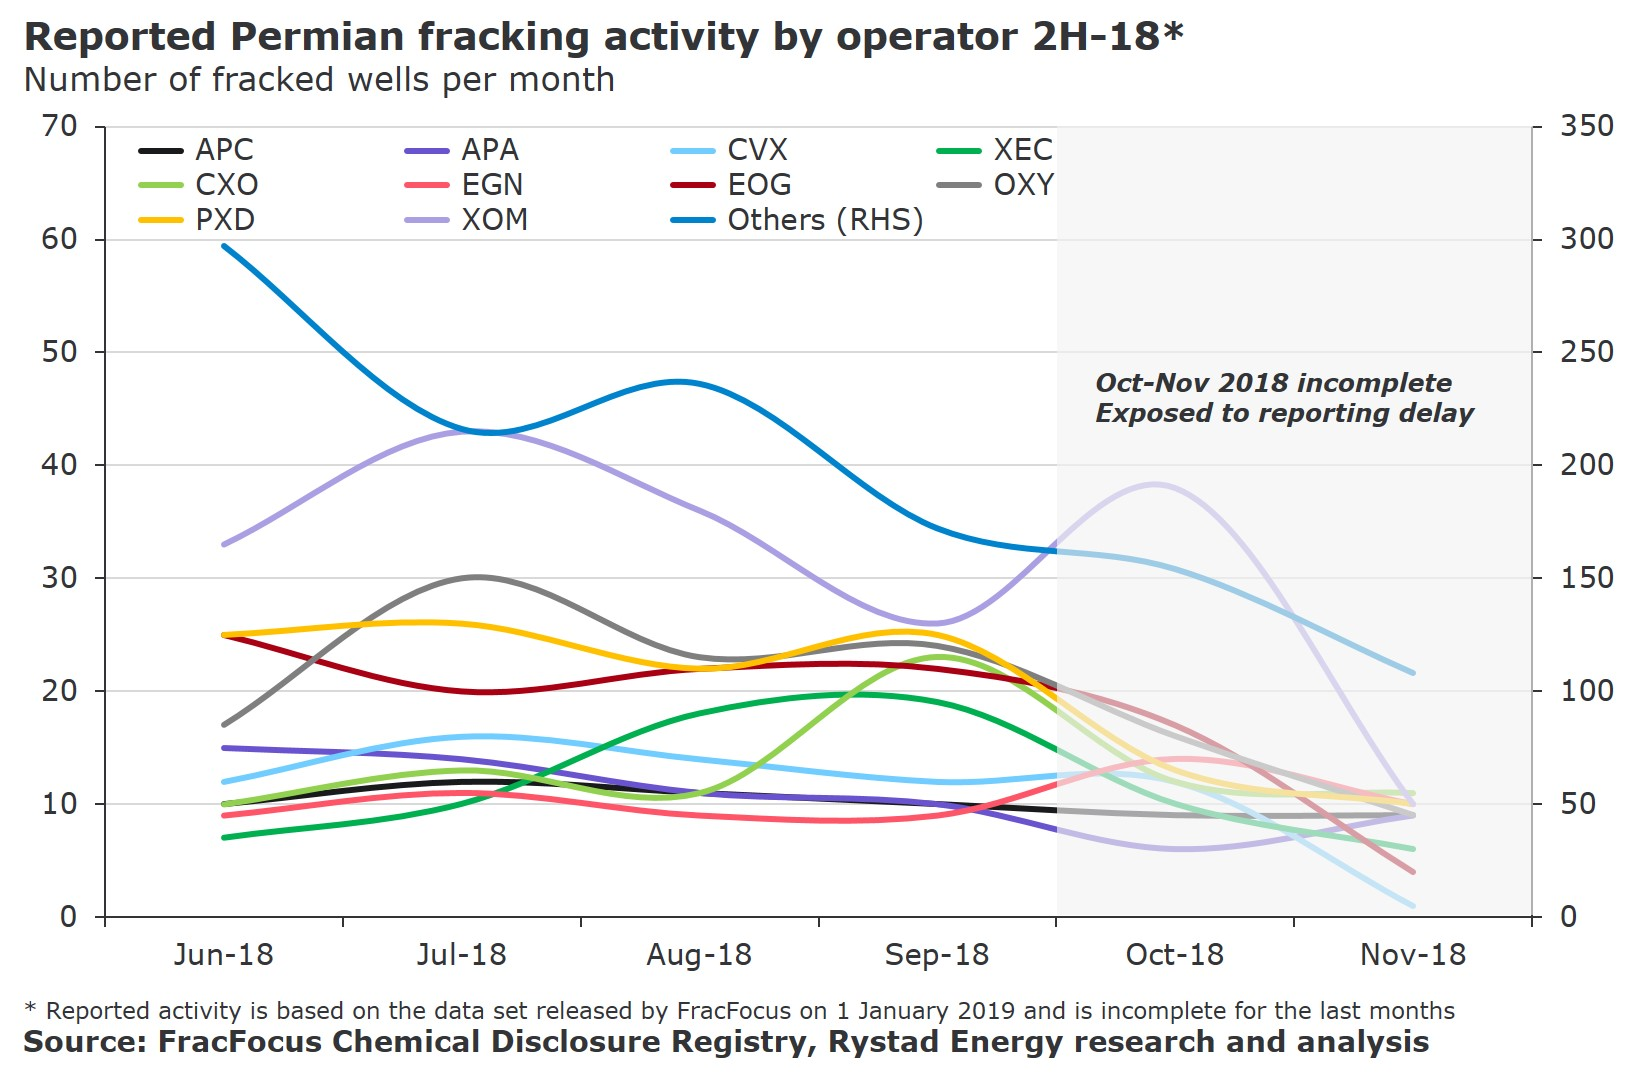 A chart showing the reported Permian fracking activity by operator 2H-18*.